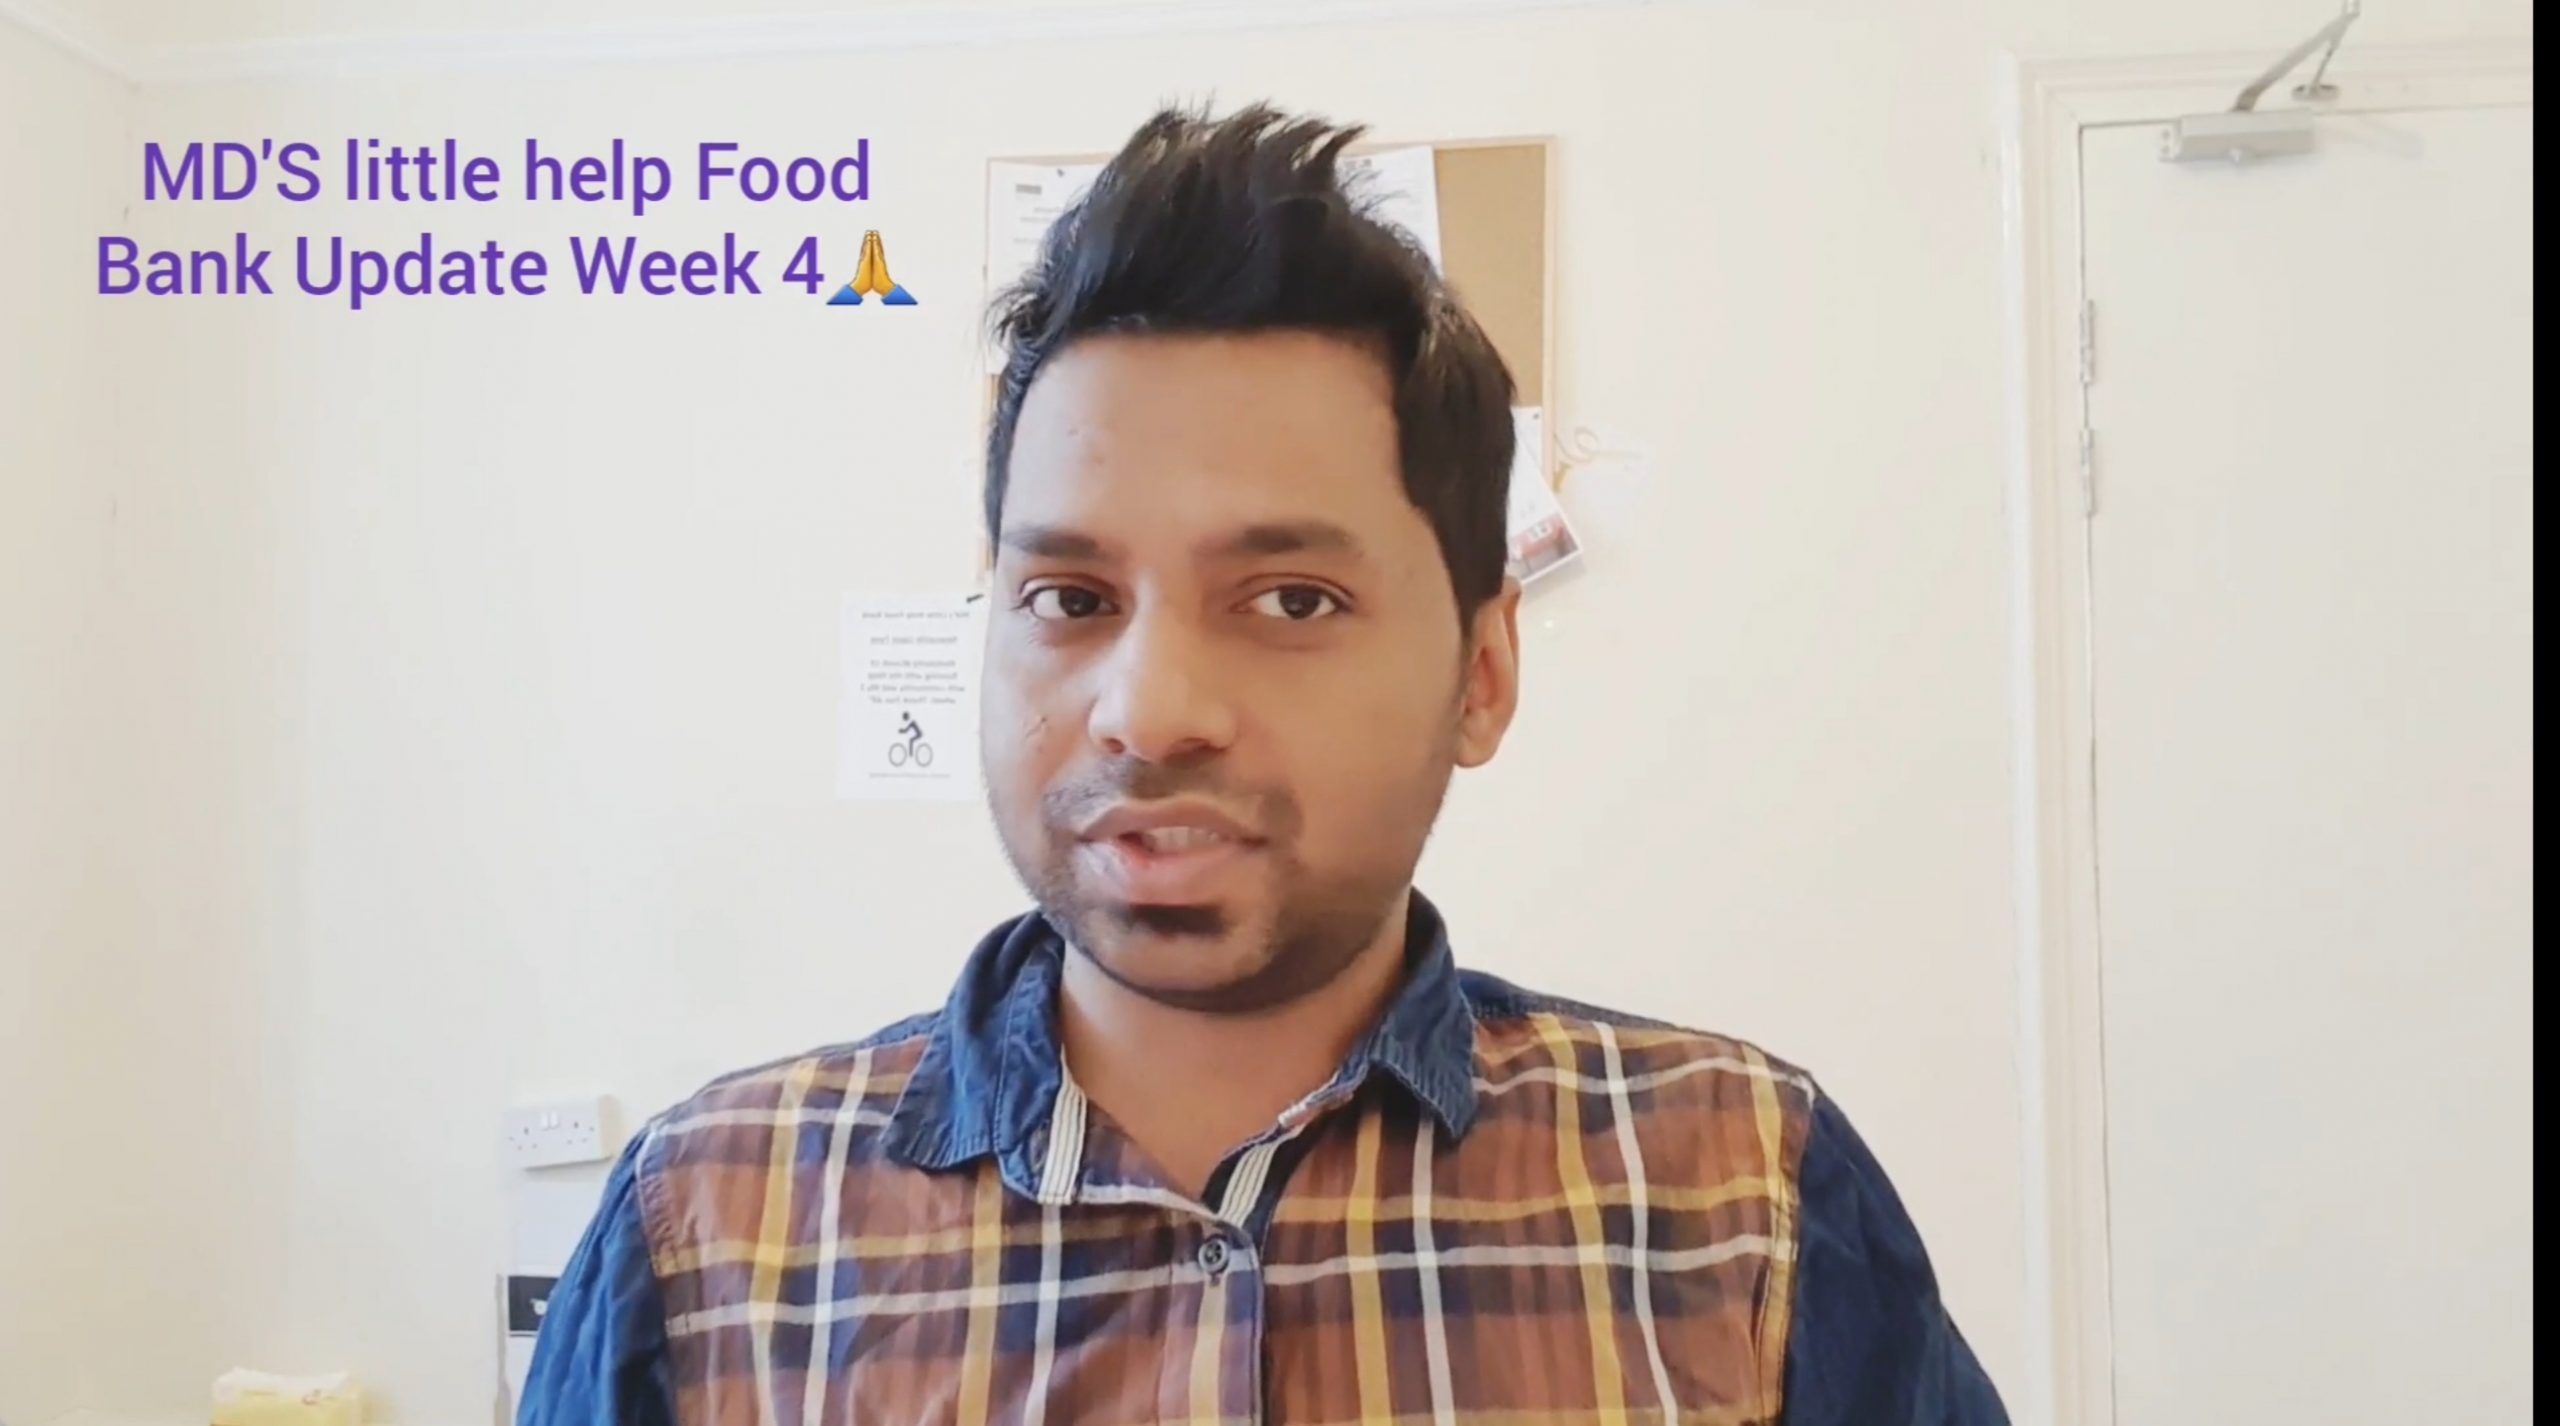 This week I have delivered 40 food pack! Total 194👍🥰🚵💪- Md's Little Help Food Bank Update Week 4